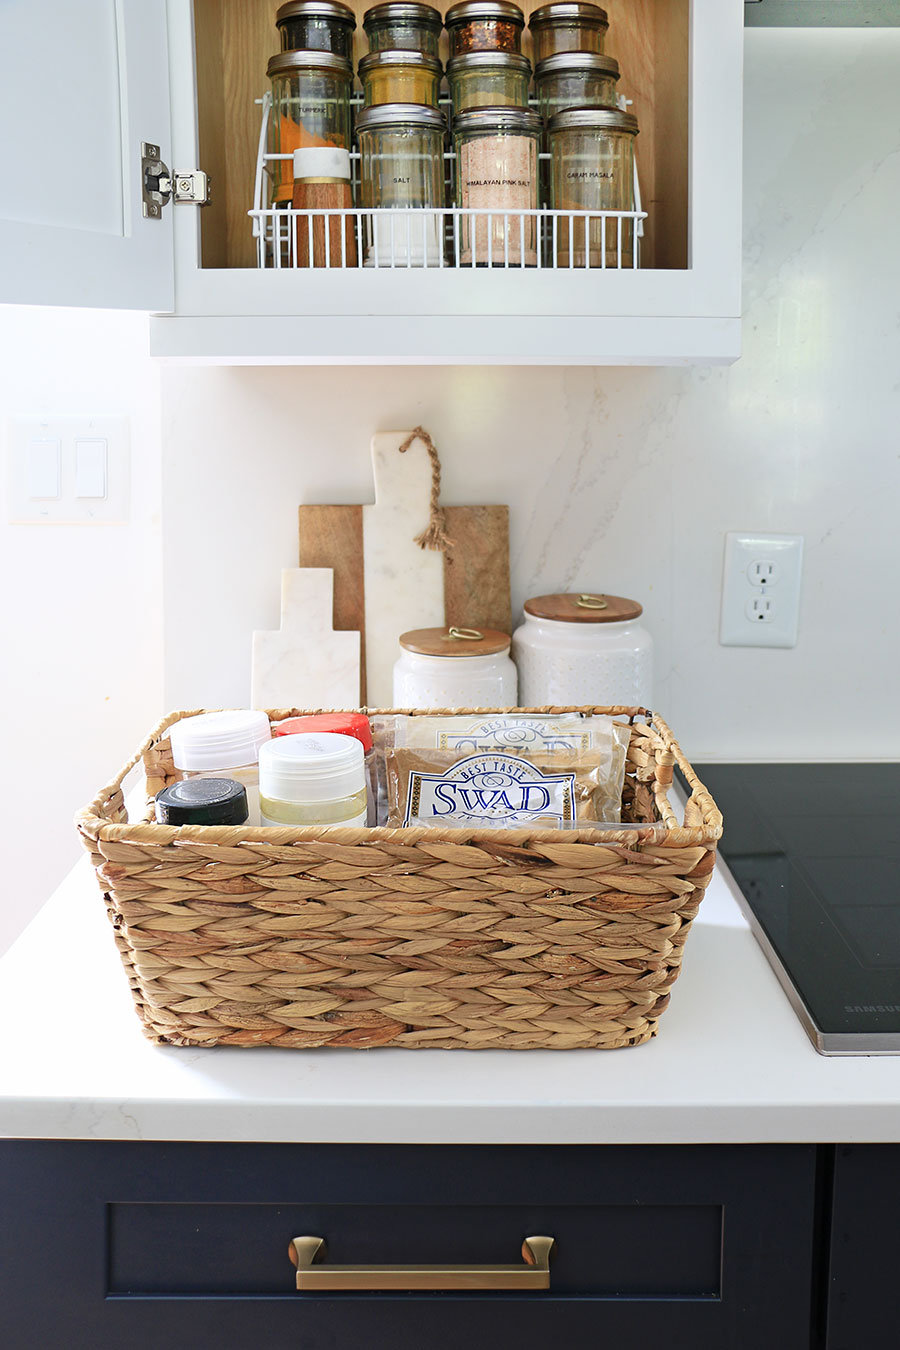 Spice-cabinet-and-basket-with-spices